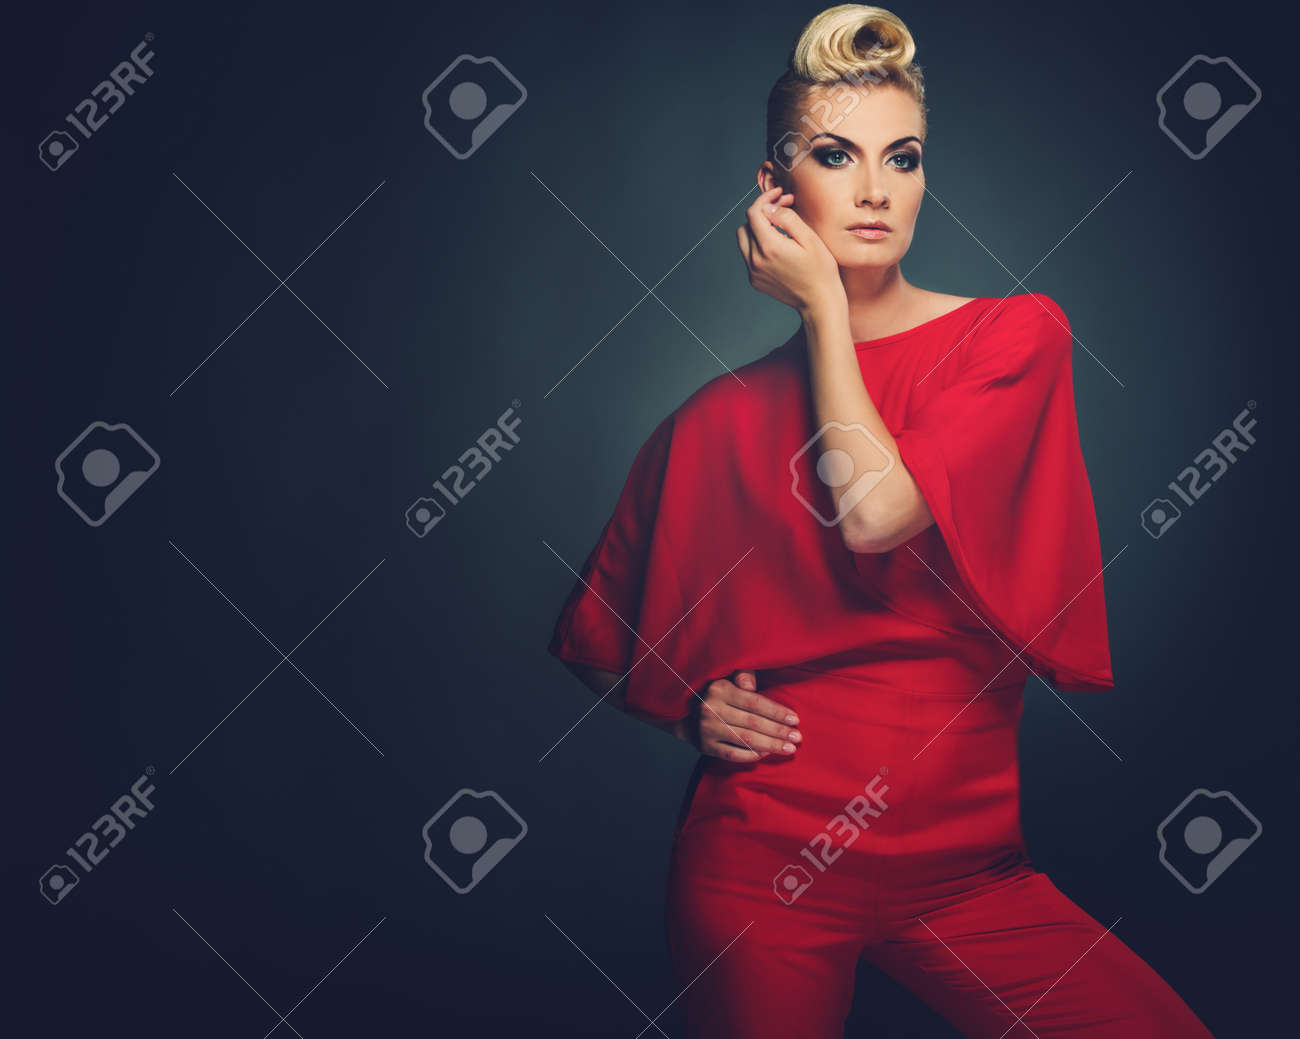 Fashionable woman in red with creative hairstyle Stock Photo - 15647789